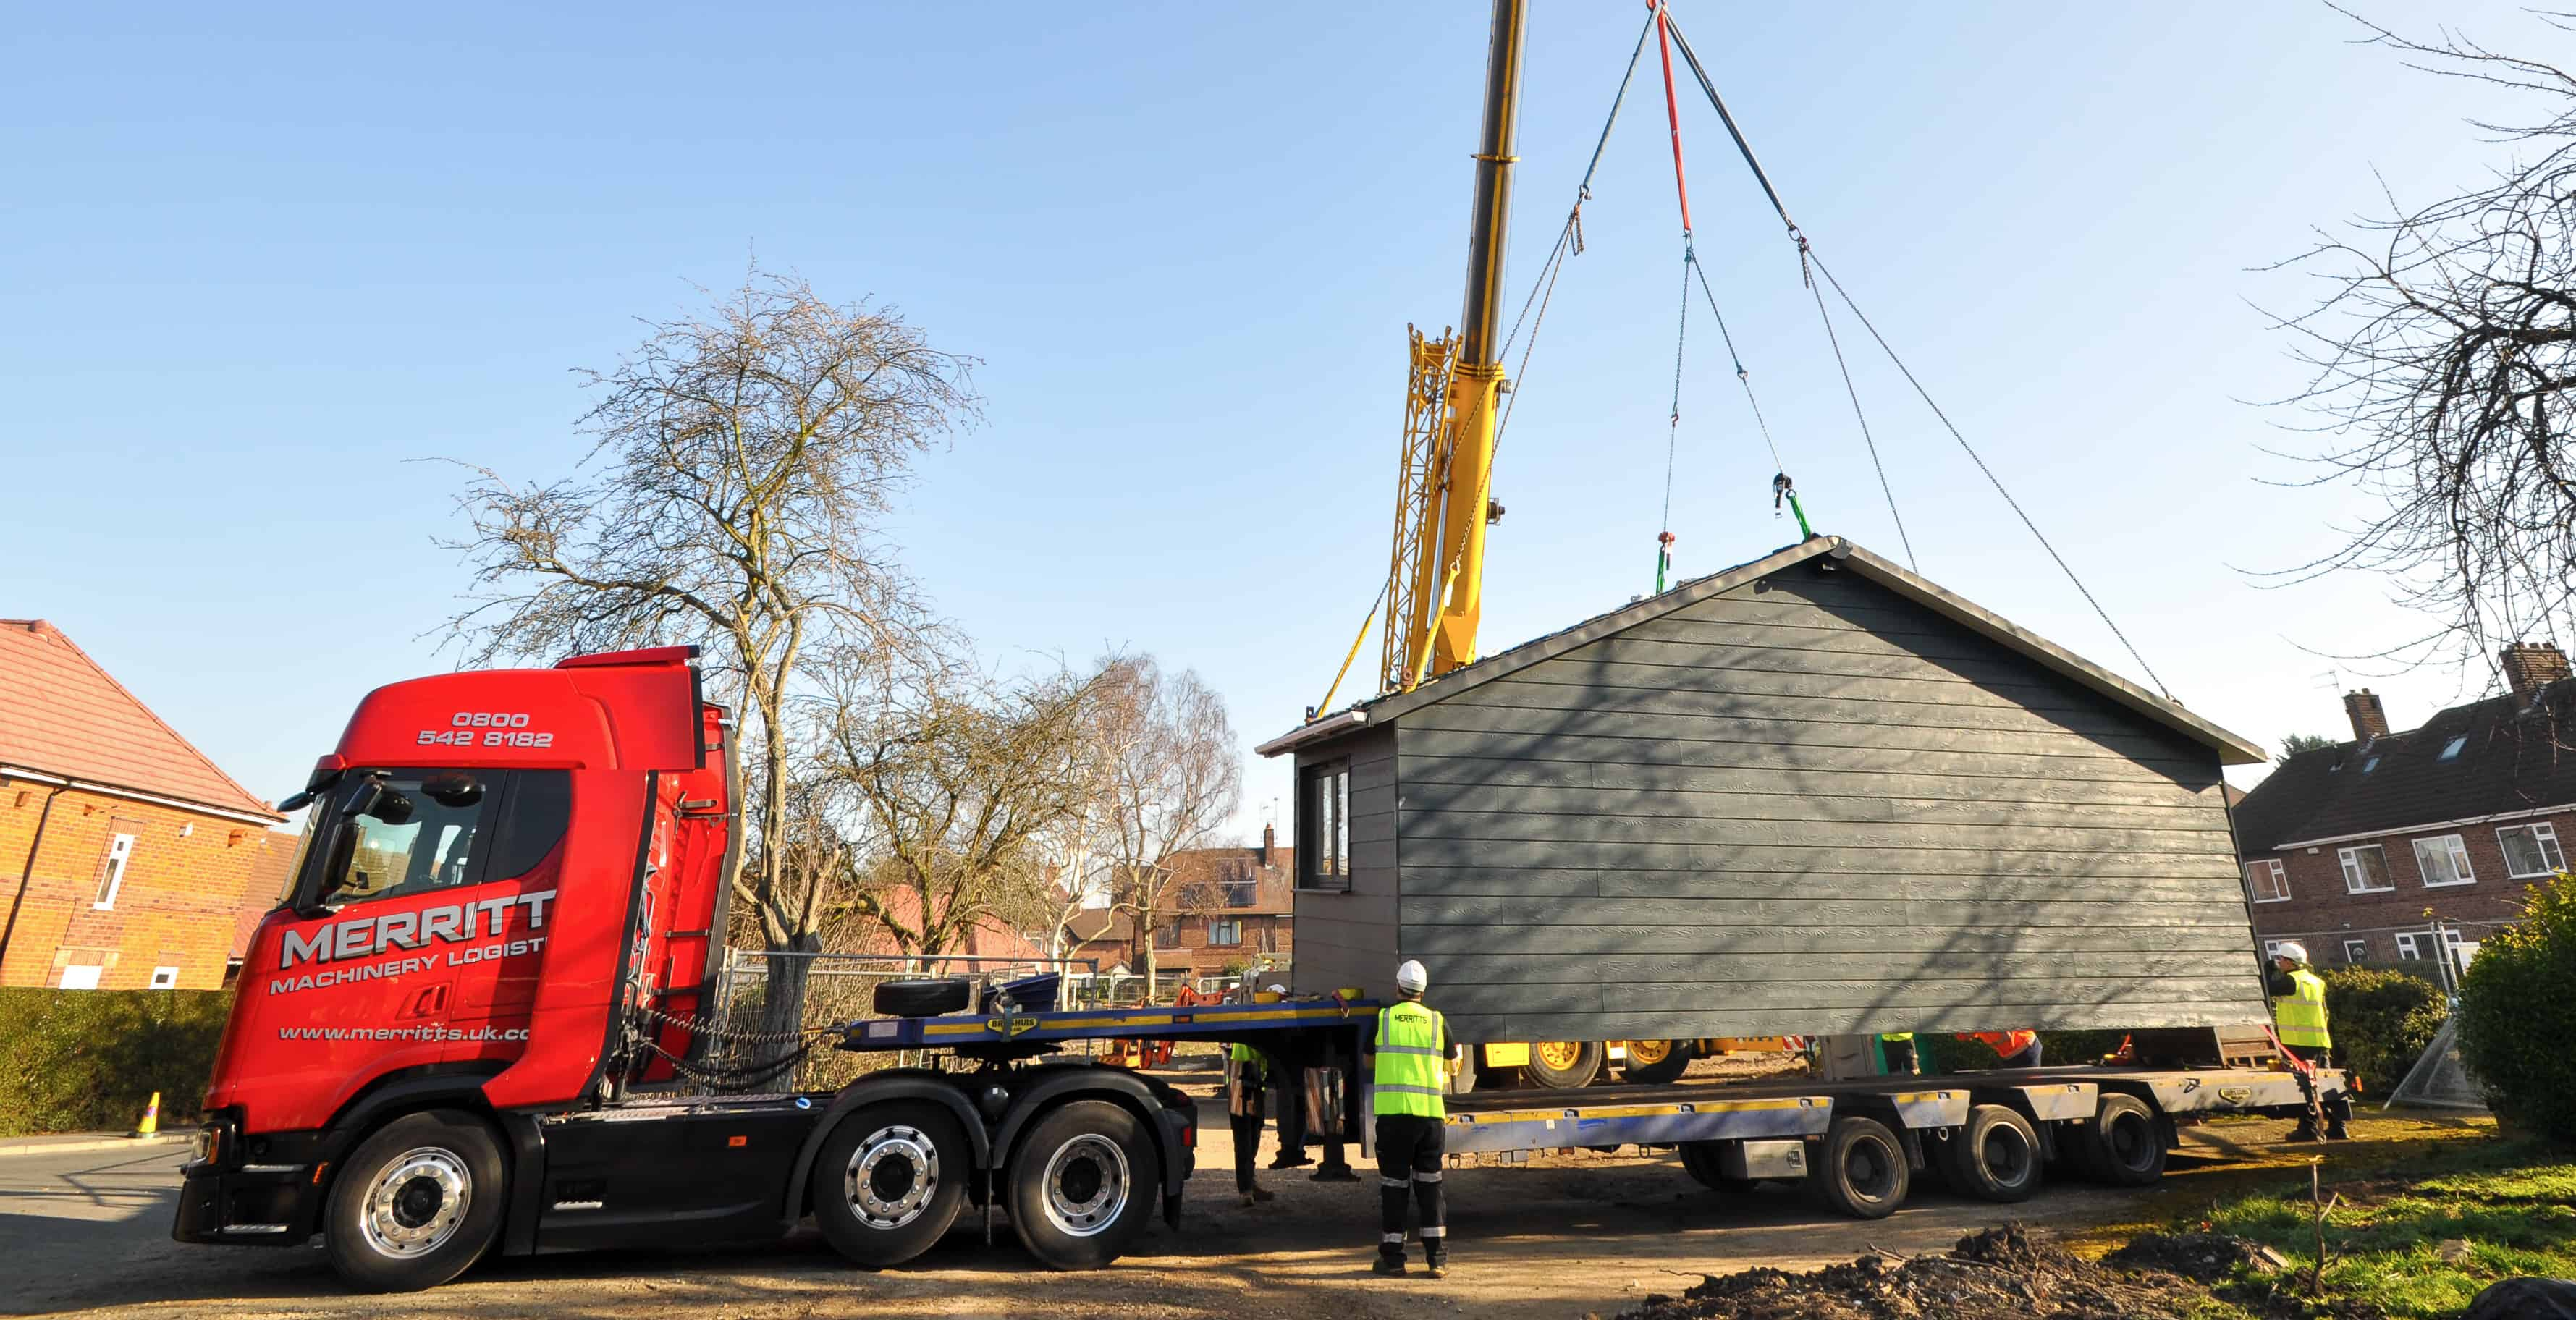 Specialist Lifting and Haulage